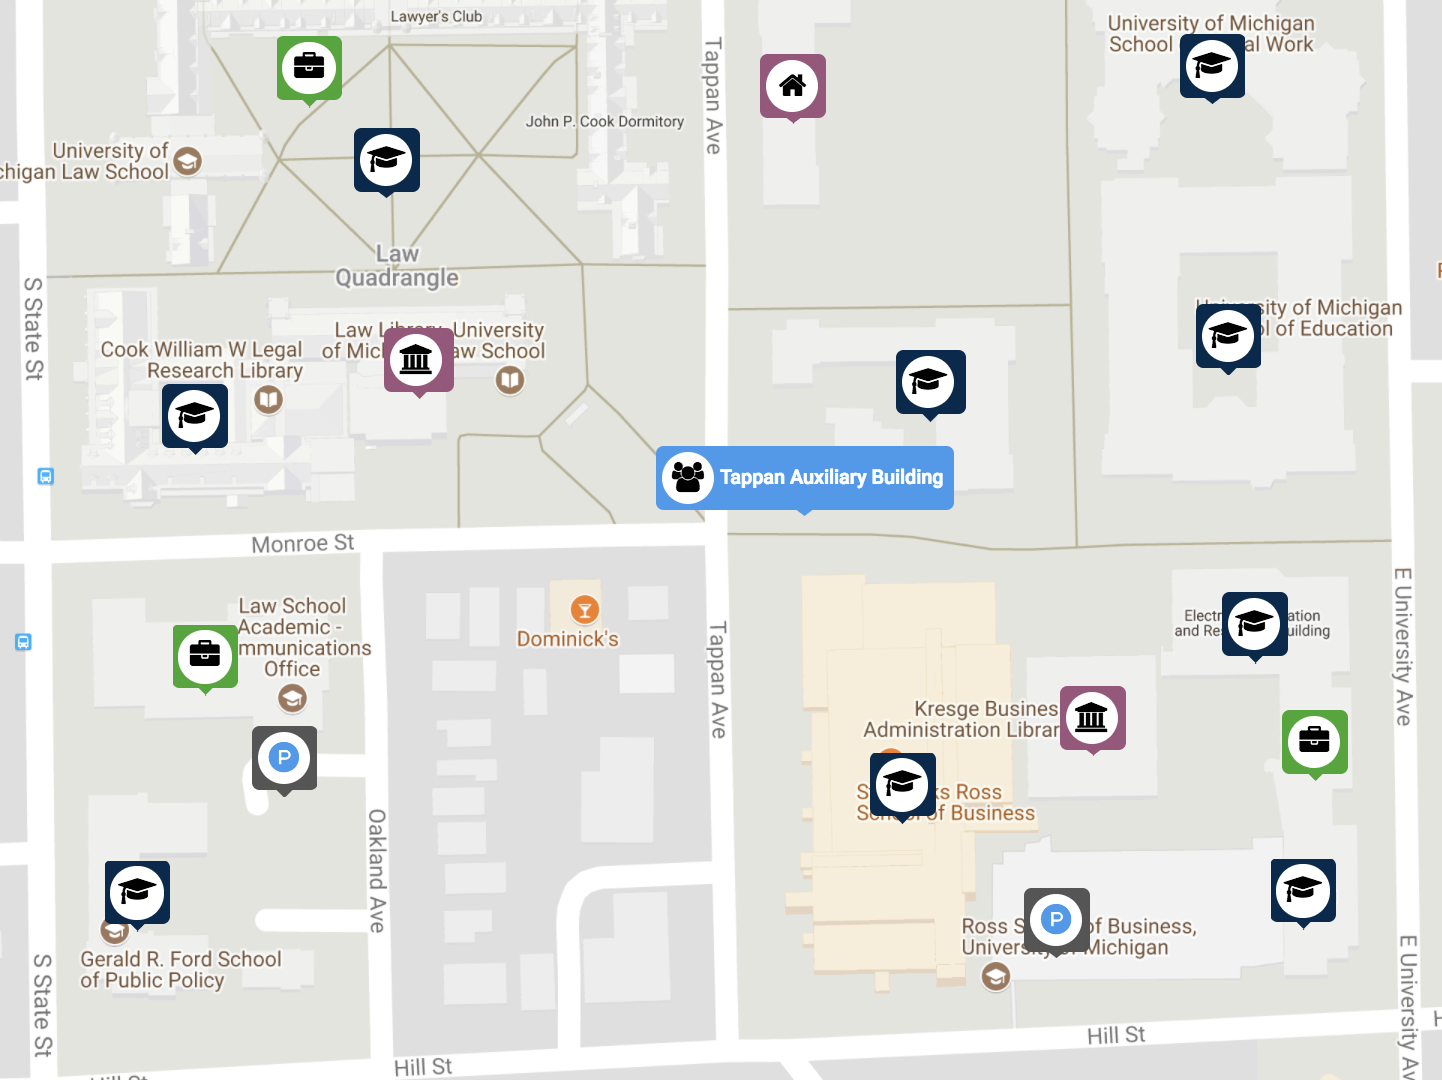 tappan ave on maps.studentlife.umich.edu